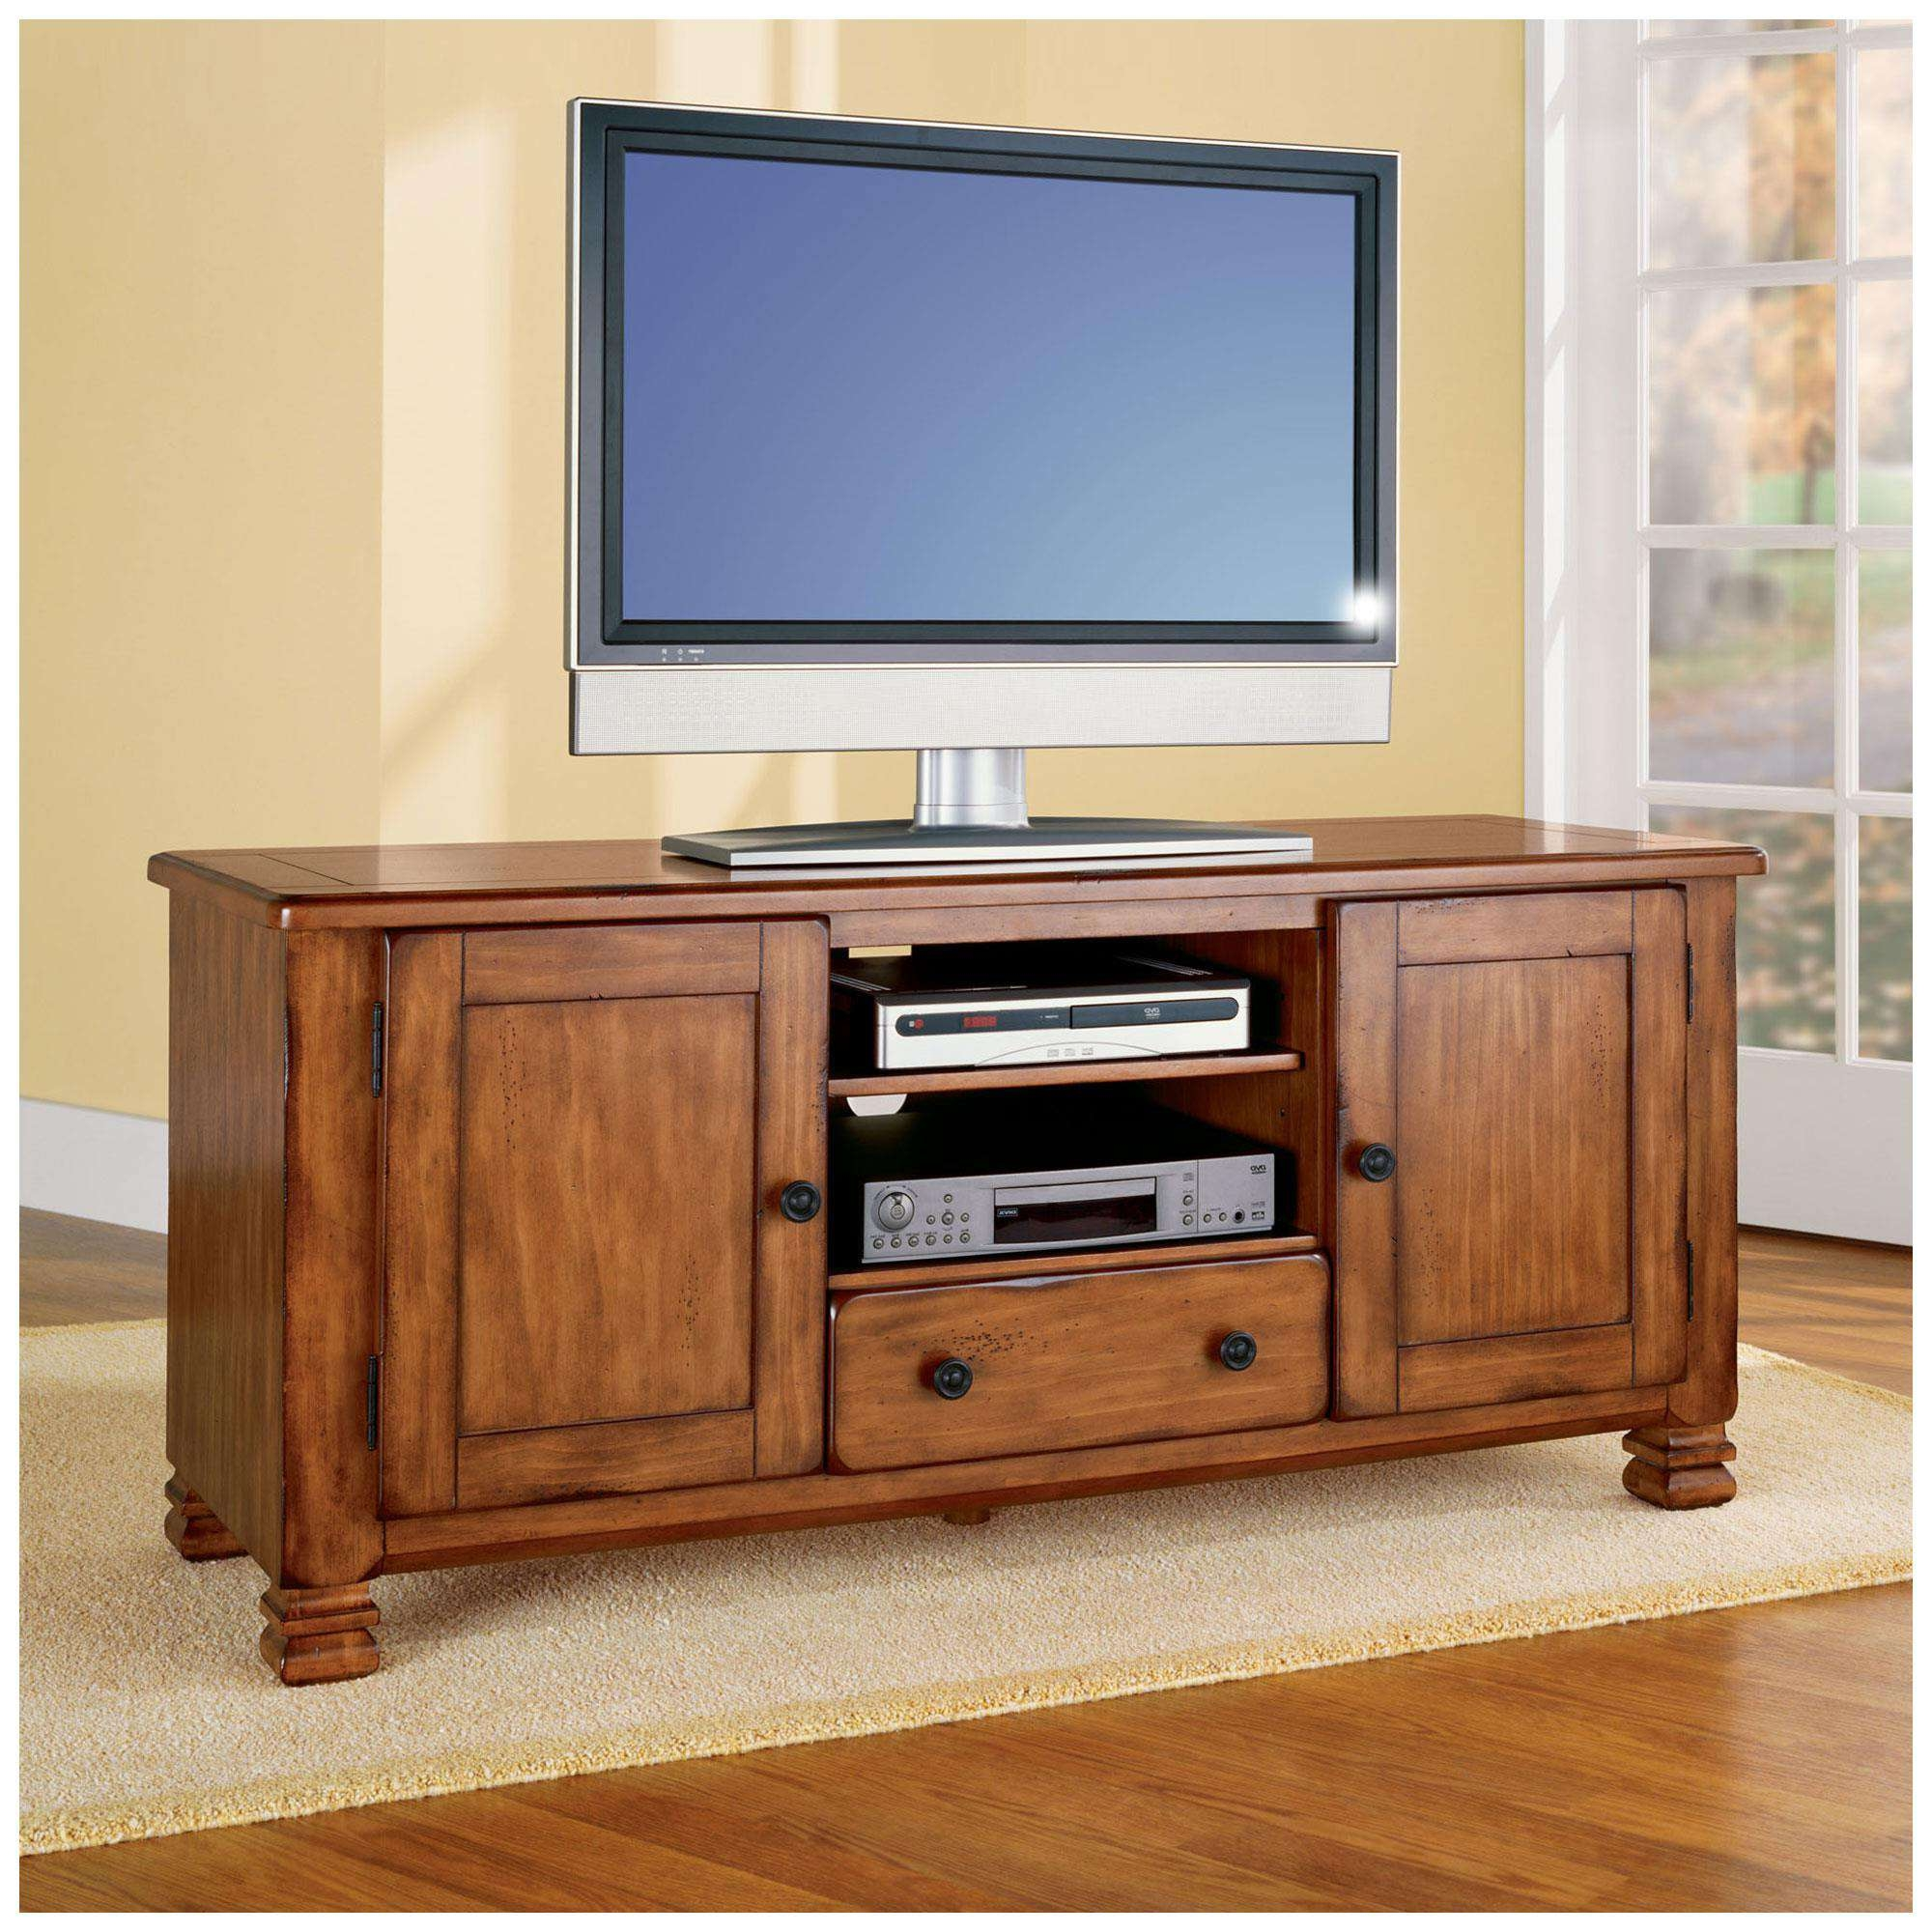 Open Tv Stands Uncategorized Used File Cabinets For Sale Best Throughout Cherry Wood Tv Stands (View 9 of 15)